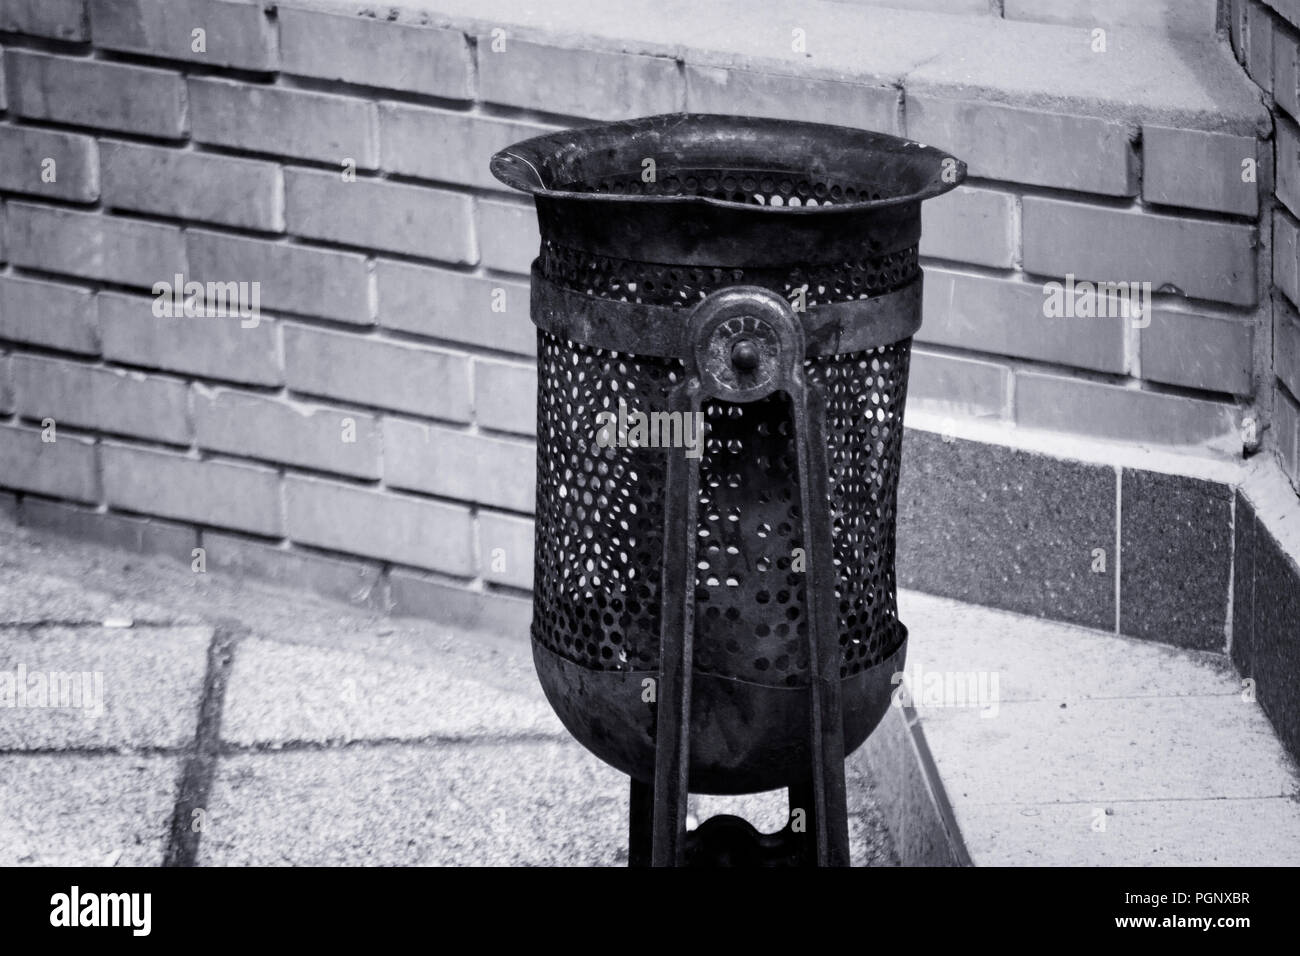 Dustbin on the street in black and white Stock Photo